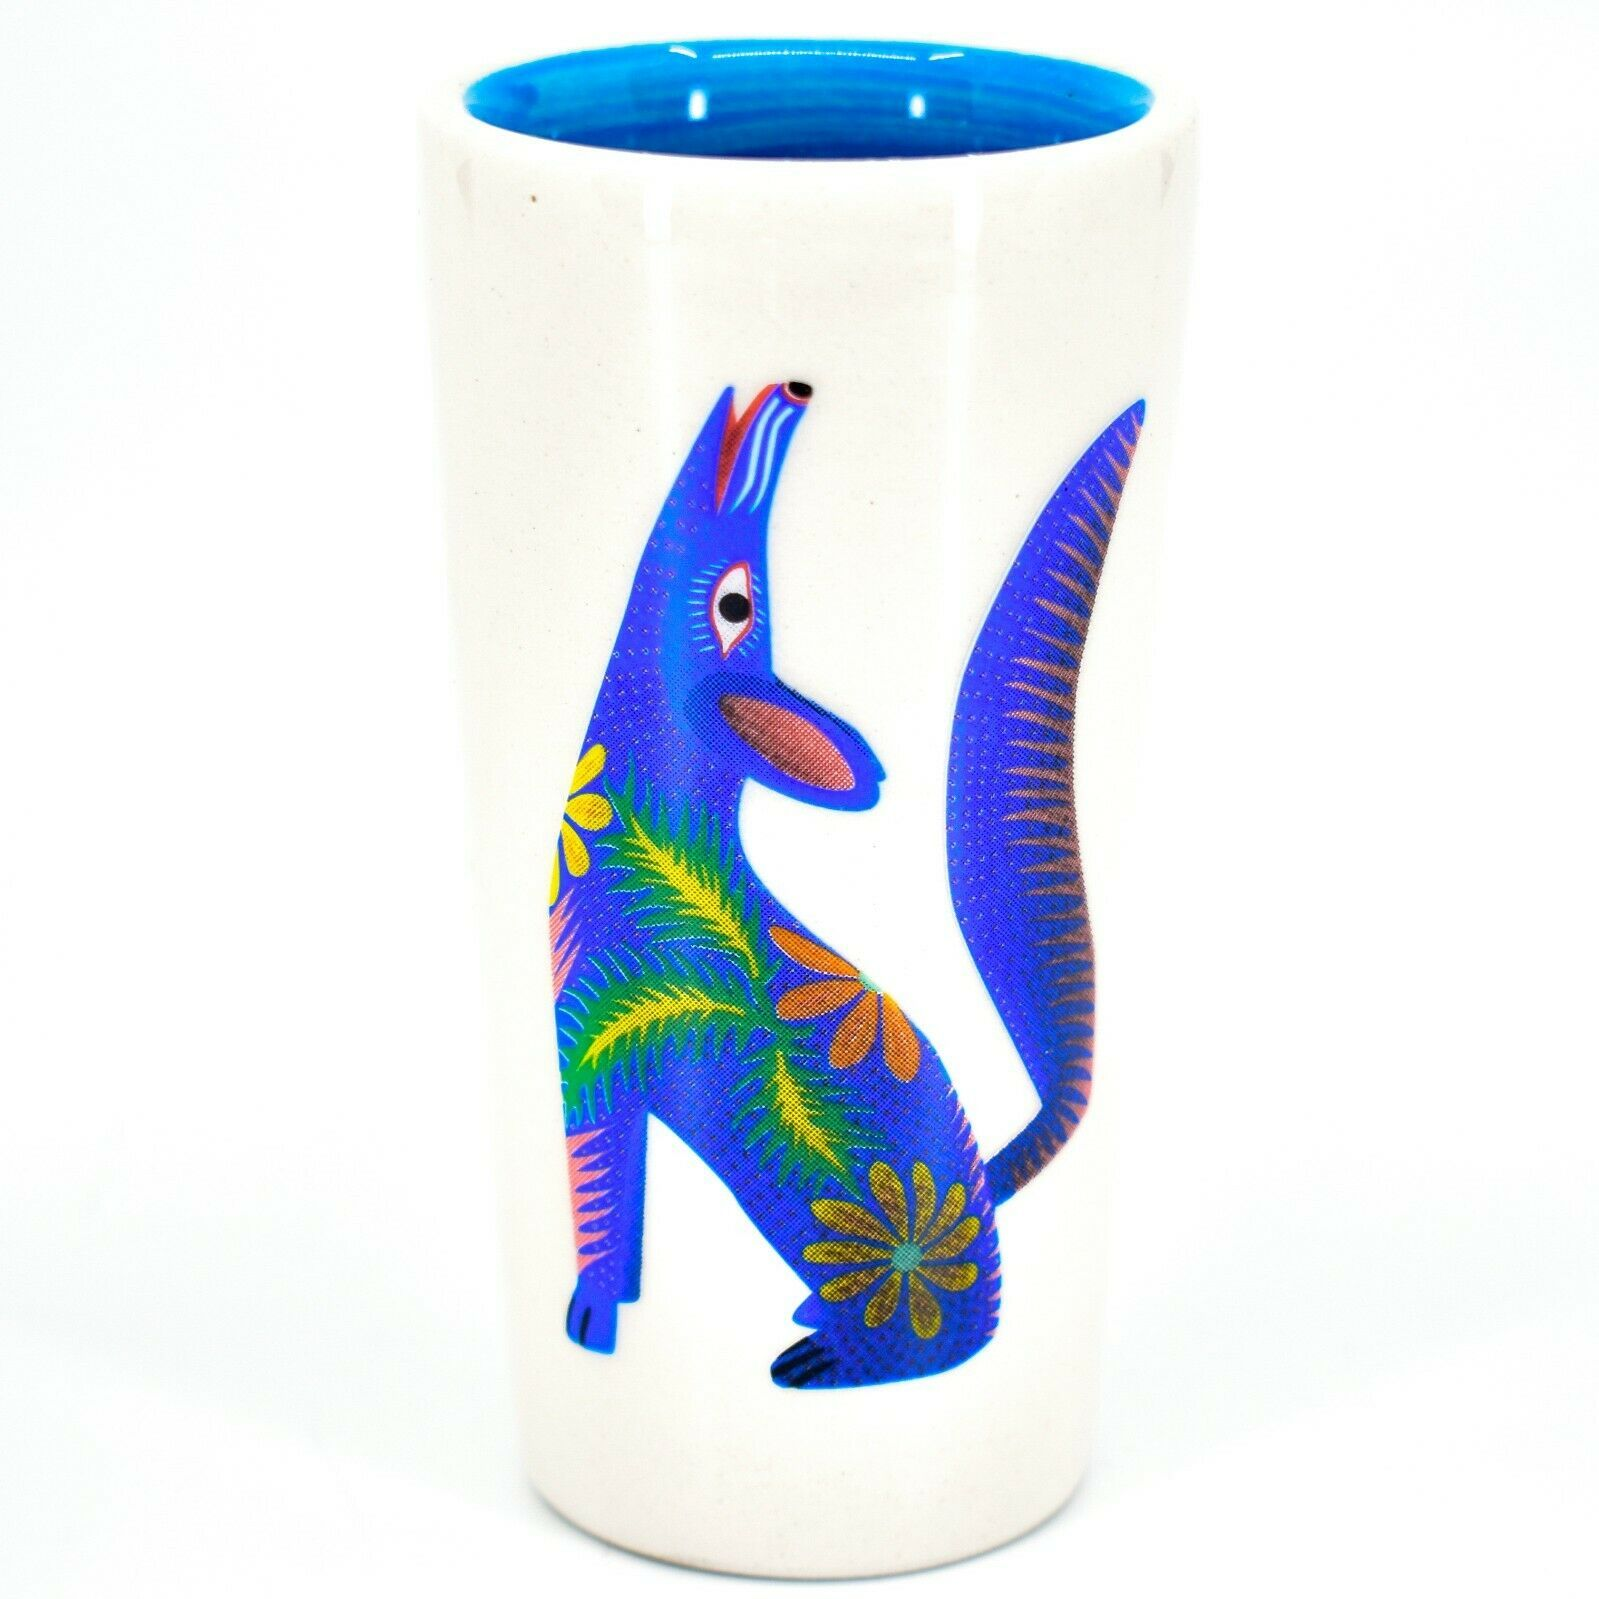 Howling Wolf Alebrije Printed Ceramic Tequila Shot Glass Shooter Made in Mexico